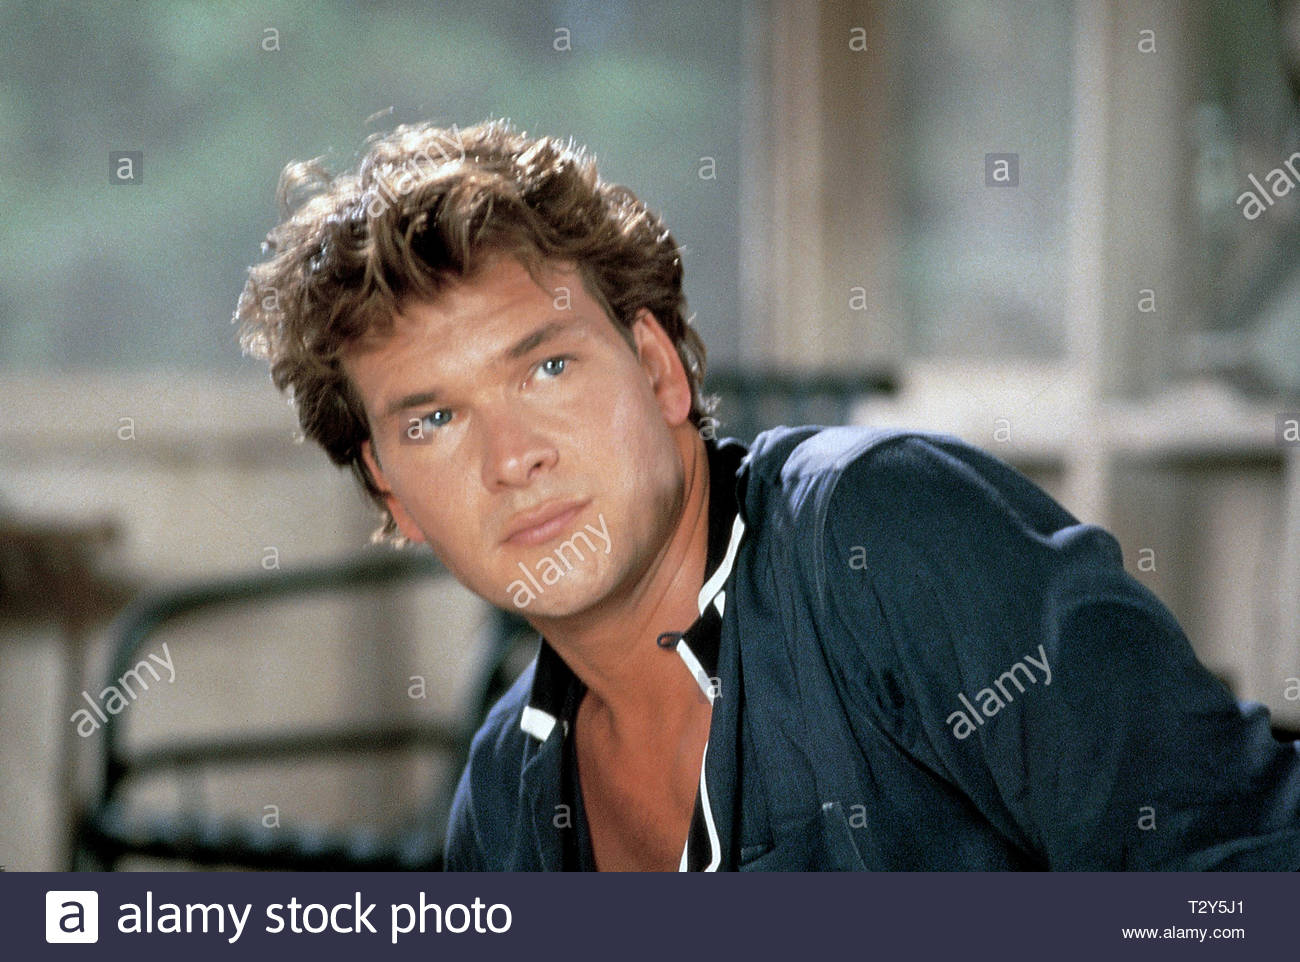 Patrick Swayze Dirty Dancing 1987 Stock Photo Alamy